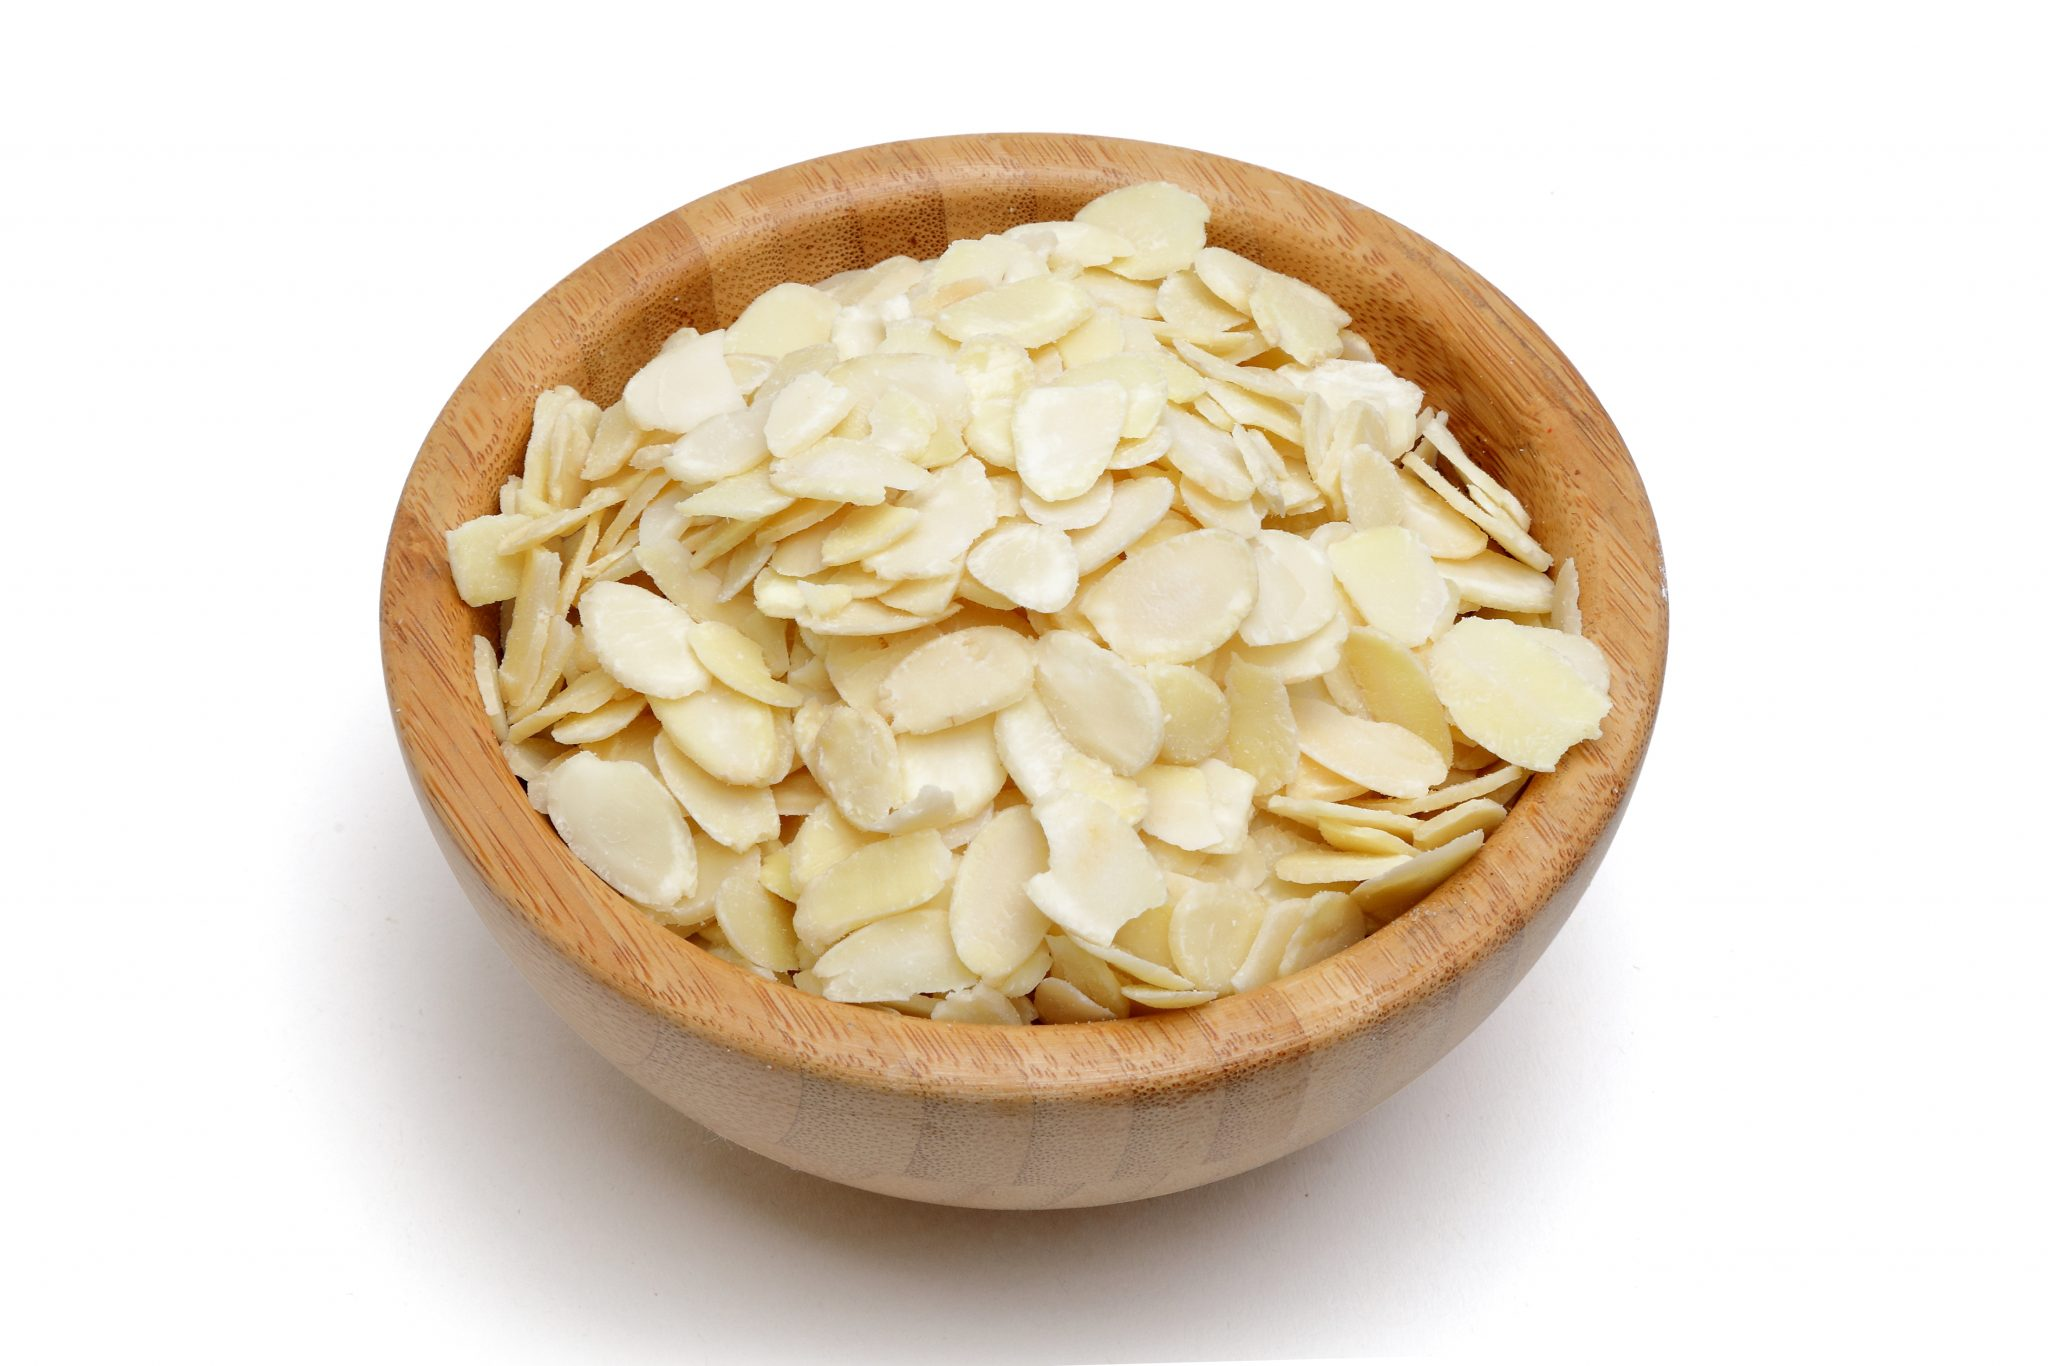 chandras blanched sliced almonds in a bowl